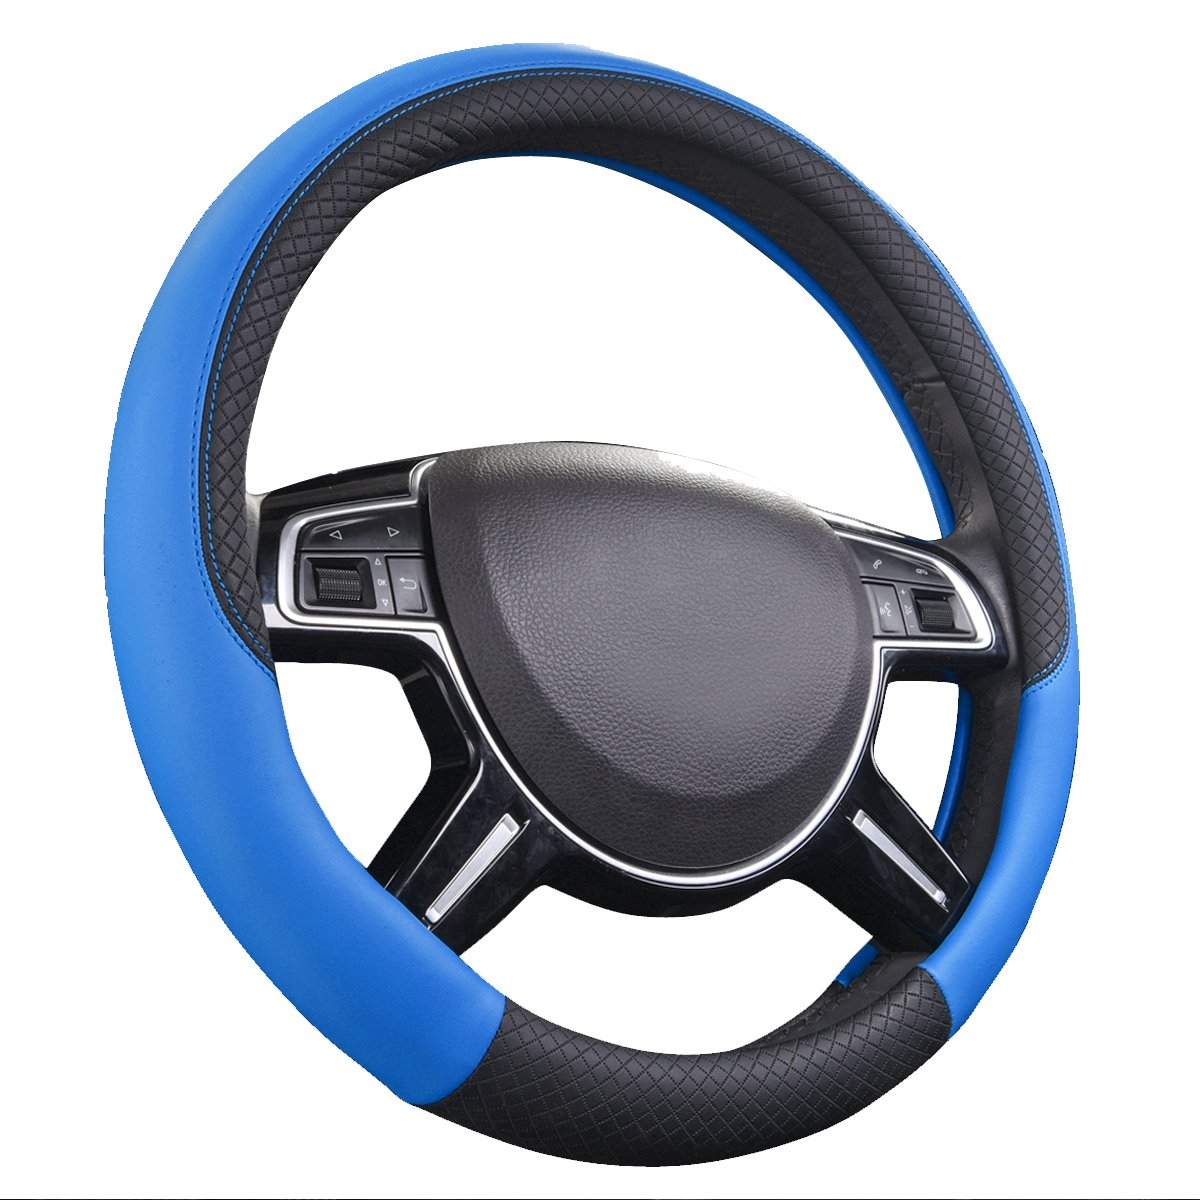 CAR PASS NEW ARRIVAL Rhombus Leather Universal Steering Wheel Cover fit for vehicles, Suv (Black And Black) LJ